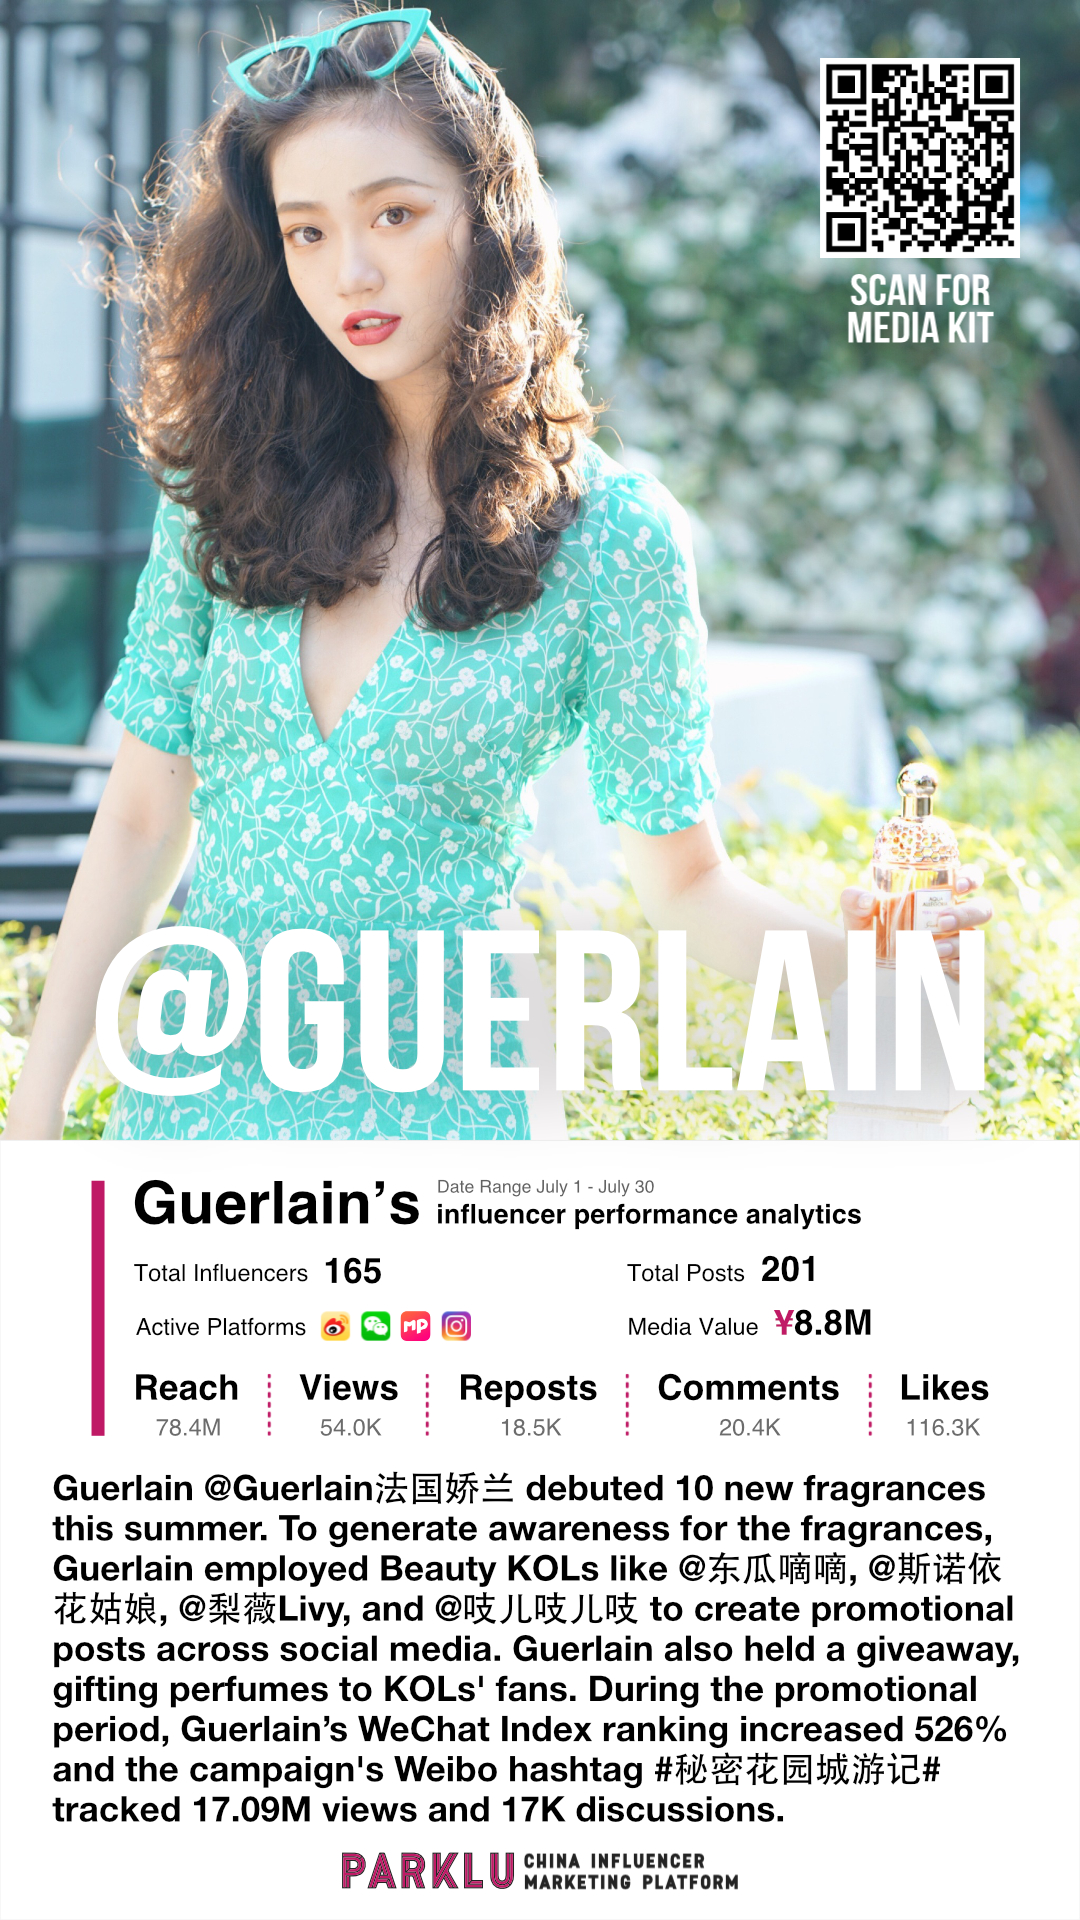 Guerlain Employed Beauty KOLs to Promote Across Social Media